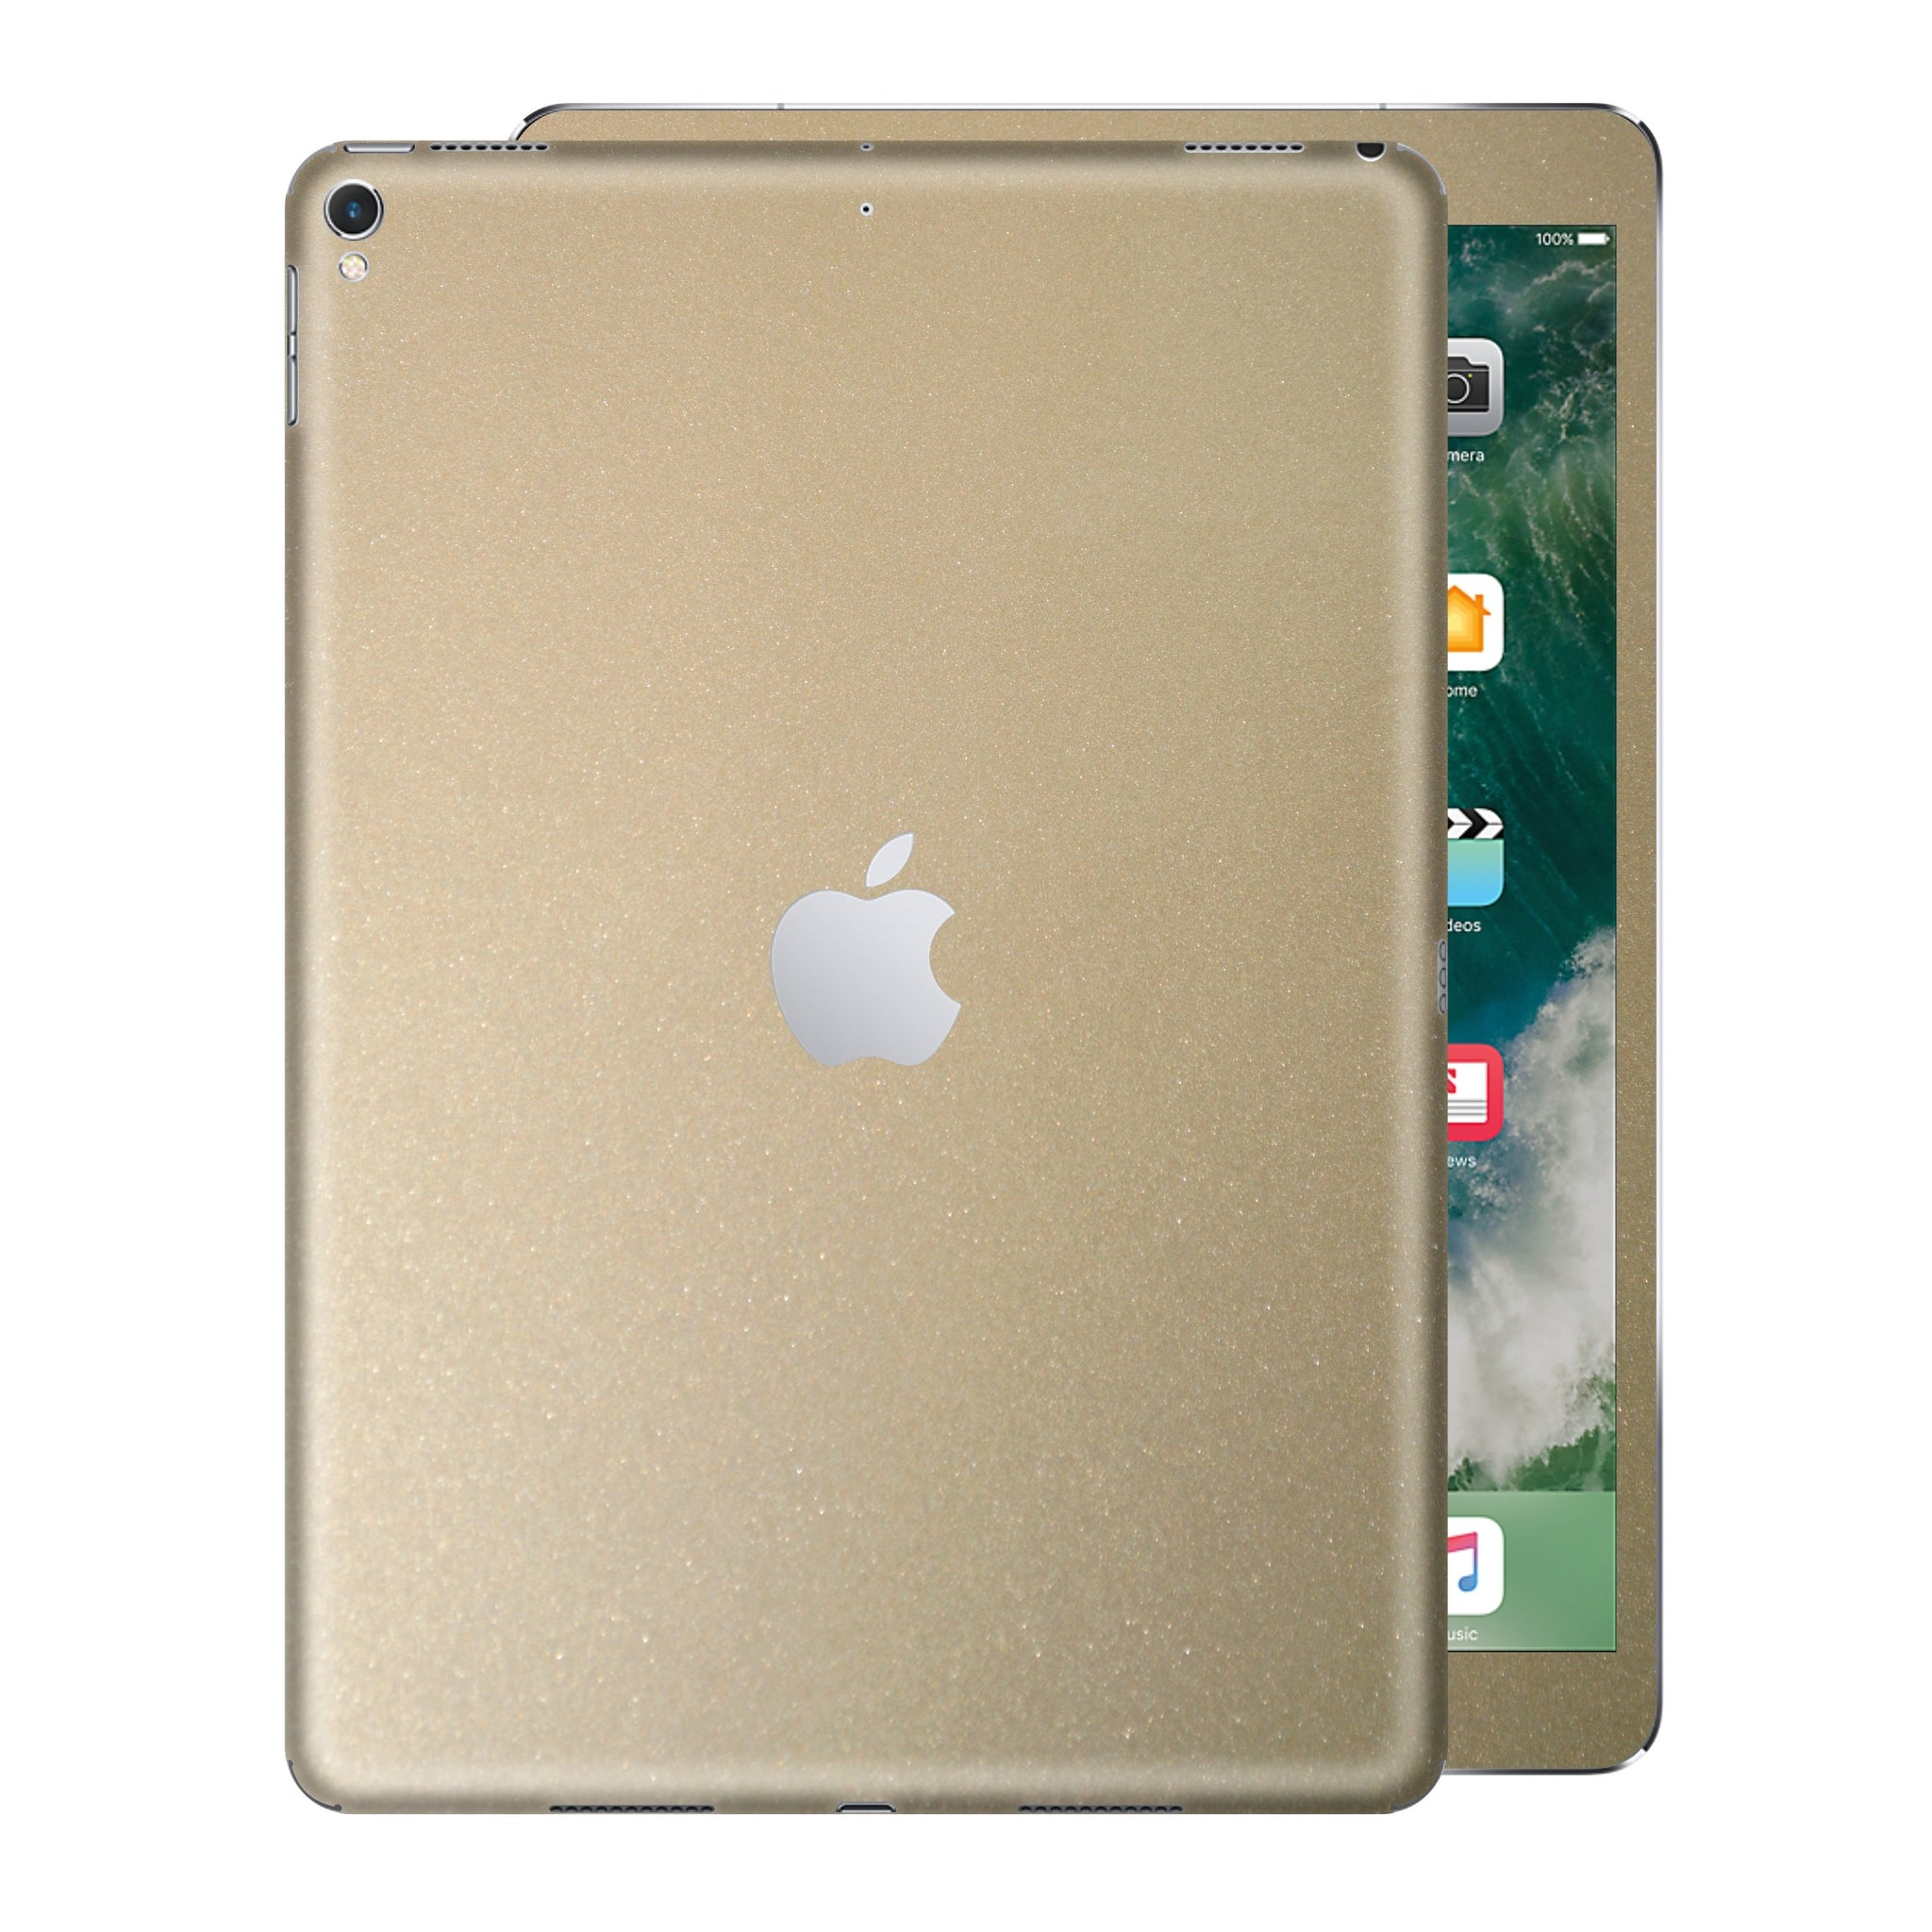 iPad PRO 12.9 inch 2017 Glossy Champagne Gold Metallic Skin Wrap Sticker Decal Cover Protector by EasySkinz